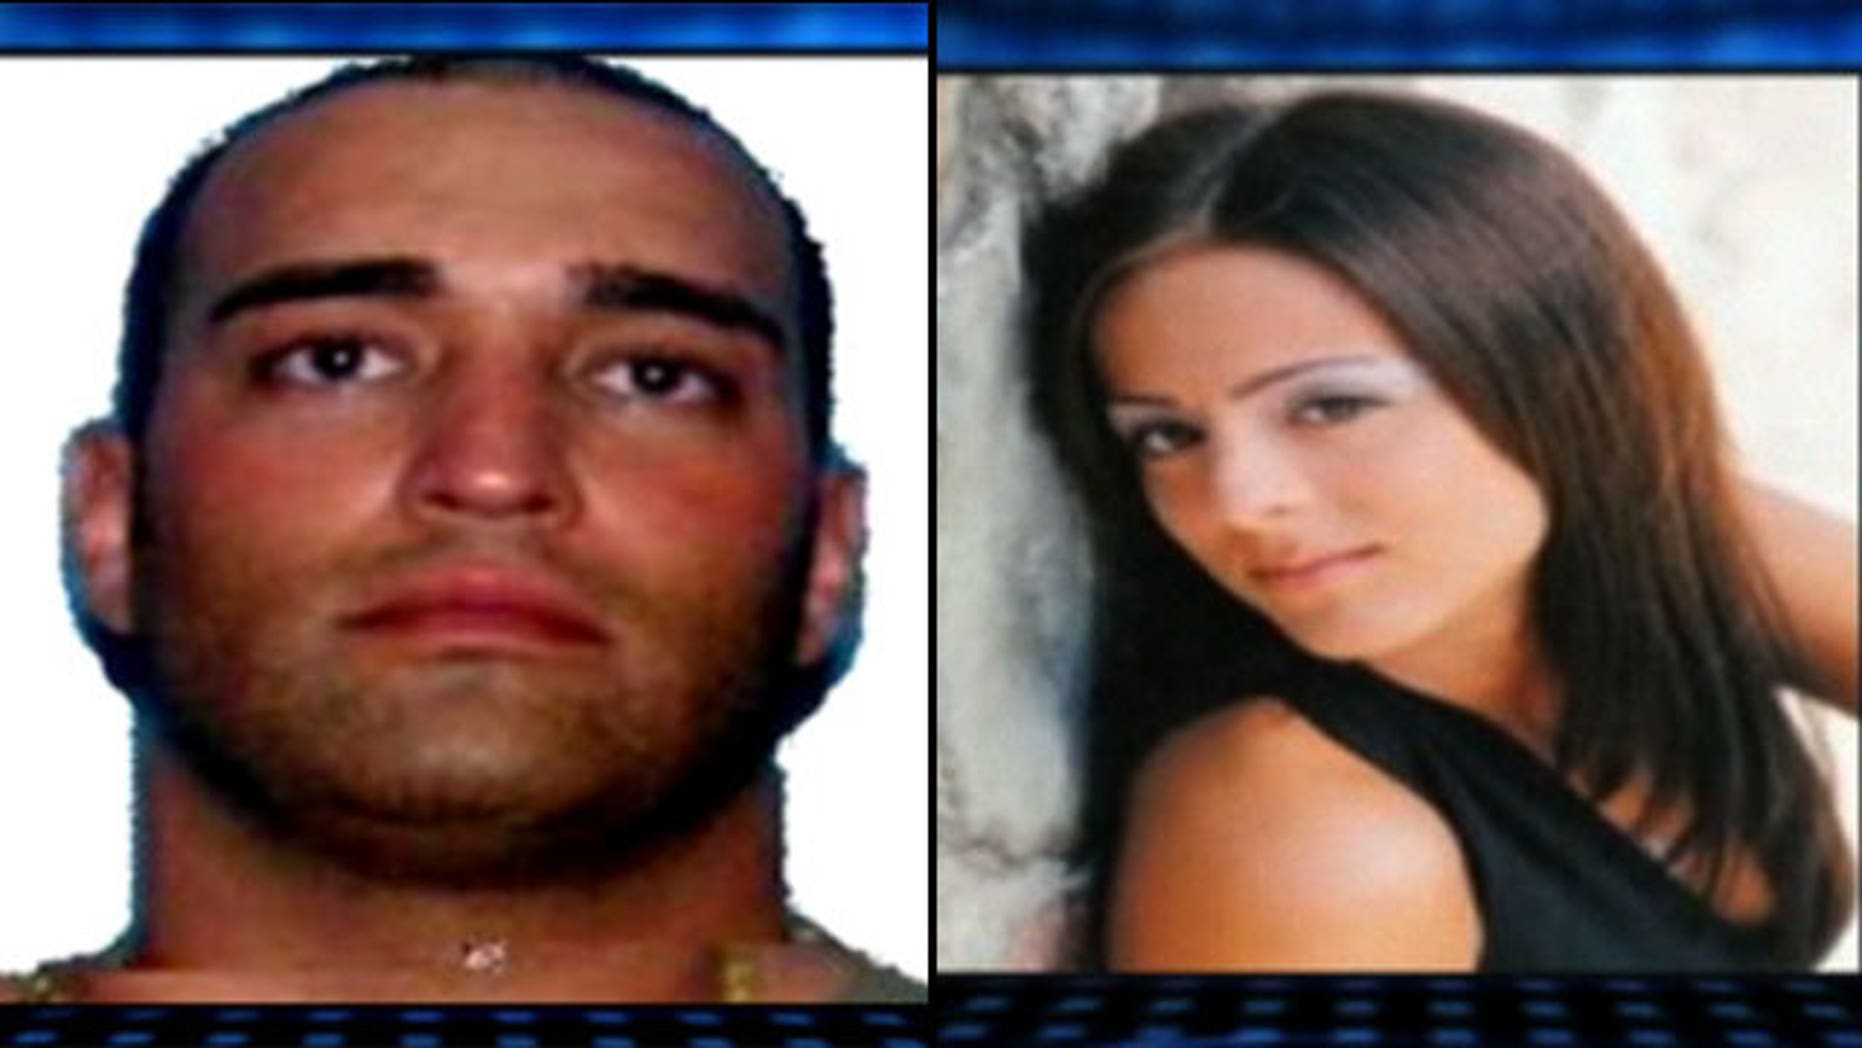 Millionaire murder suspect Peter Dabish and his alleged victim, 23-year-old Diana Demayo.